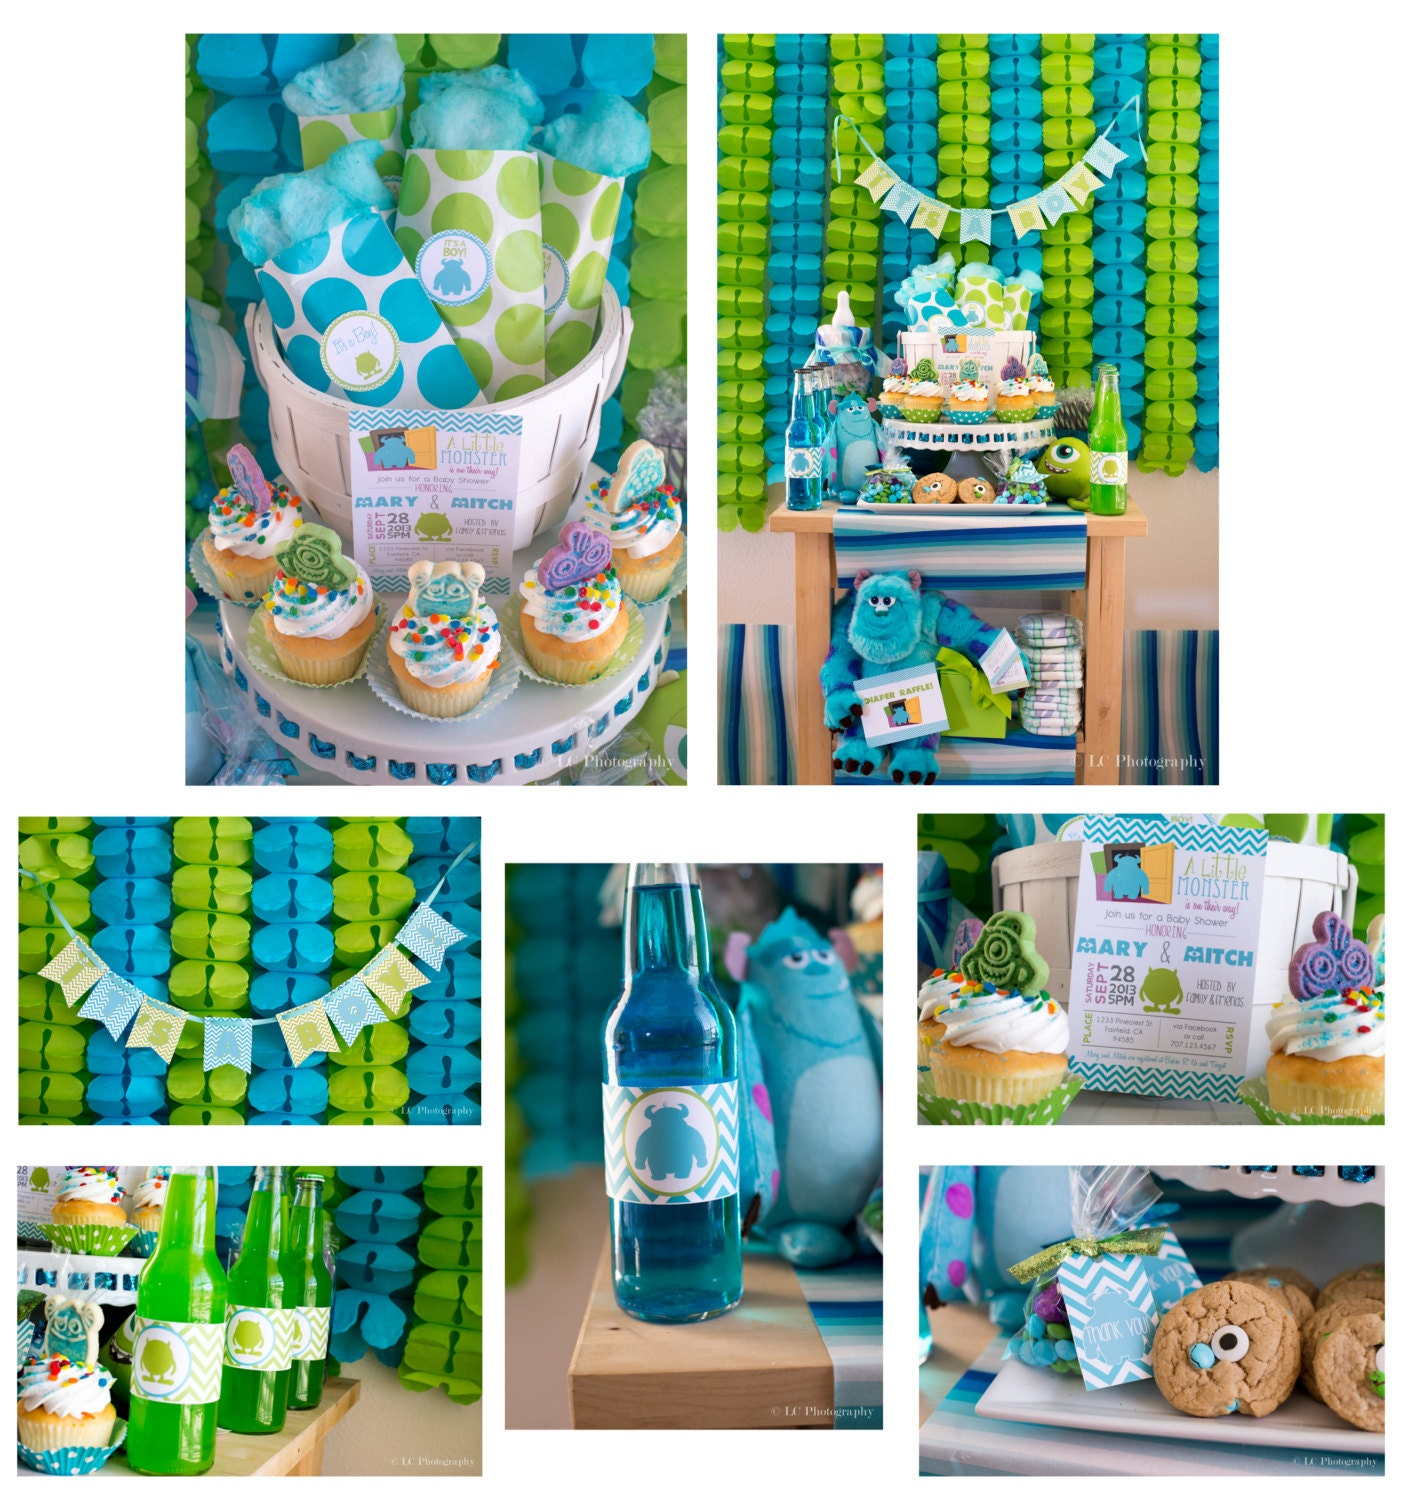 Monster Inc Baby Shower Decorations Similiar Baby Monsters Inc Party Supplies Keywords